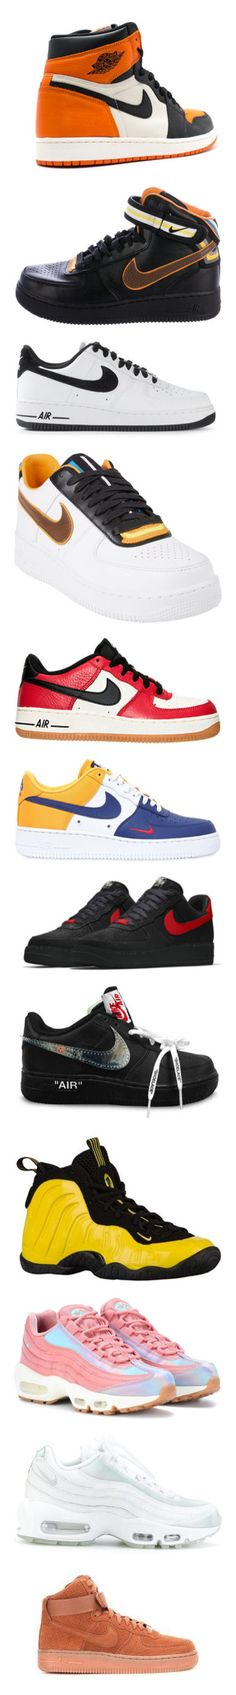 """""""NIKES"""" by rosavage01 on Polyvore featuring shoes, men's fashion, men's shoes, men's sneakers, black, mens velcro shoes, mens perforated shoes, nike mens shoes, mens multi colored shoes and mens black shoes"""